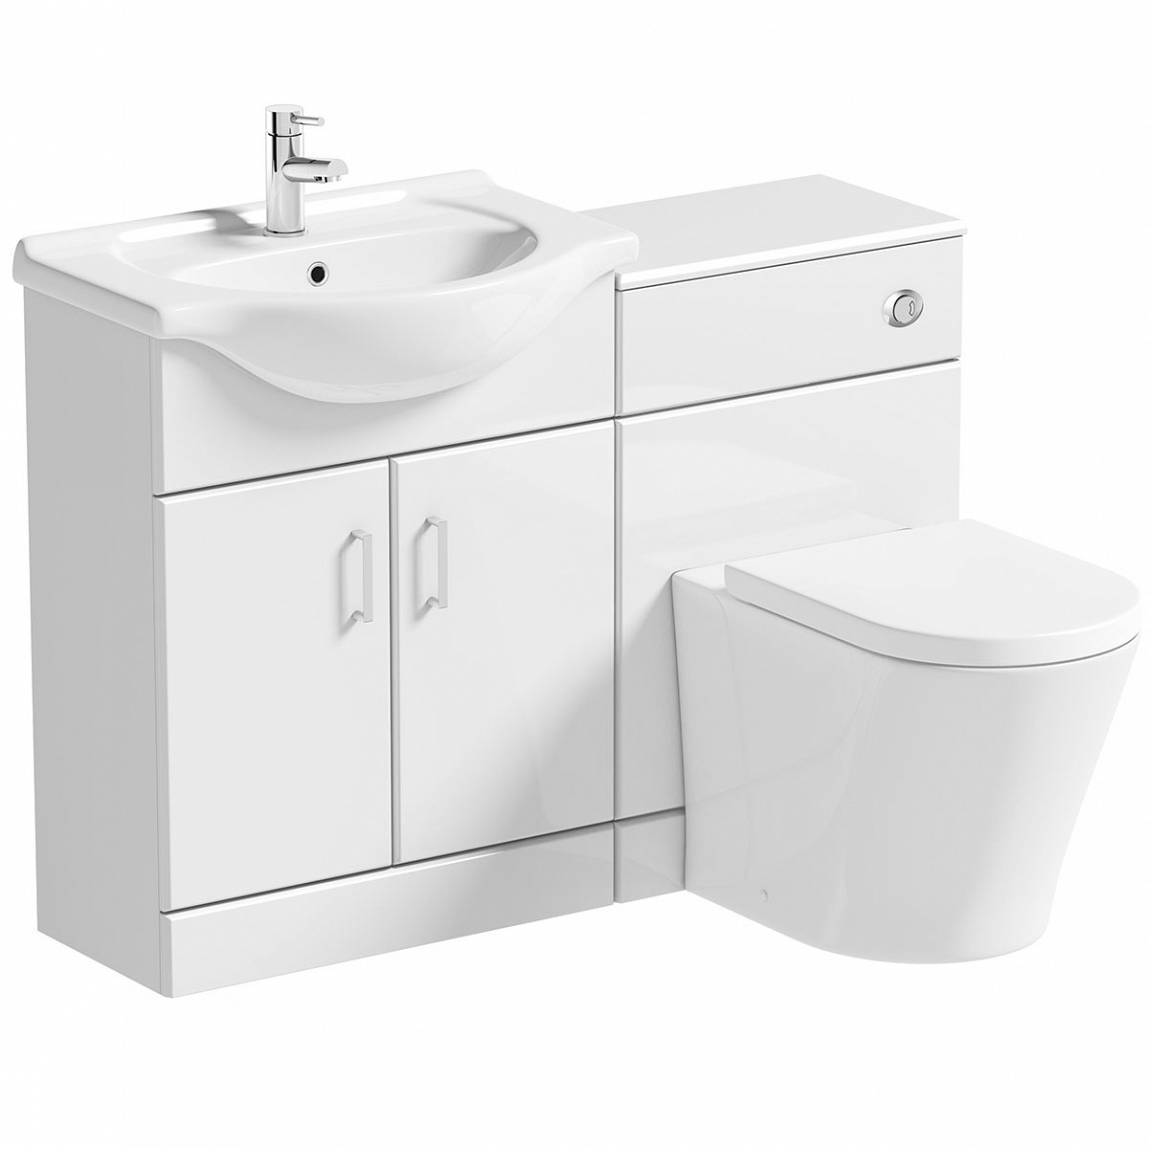 Image of Sienna Arc White Gloss Combination Vanity Unit Small